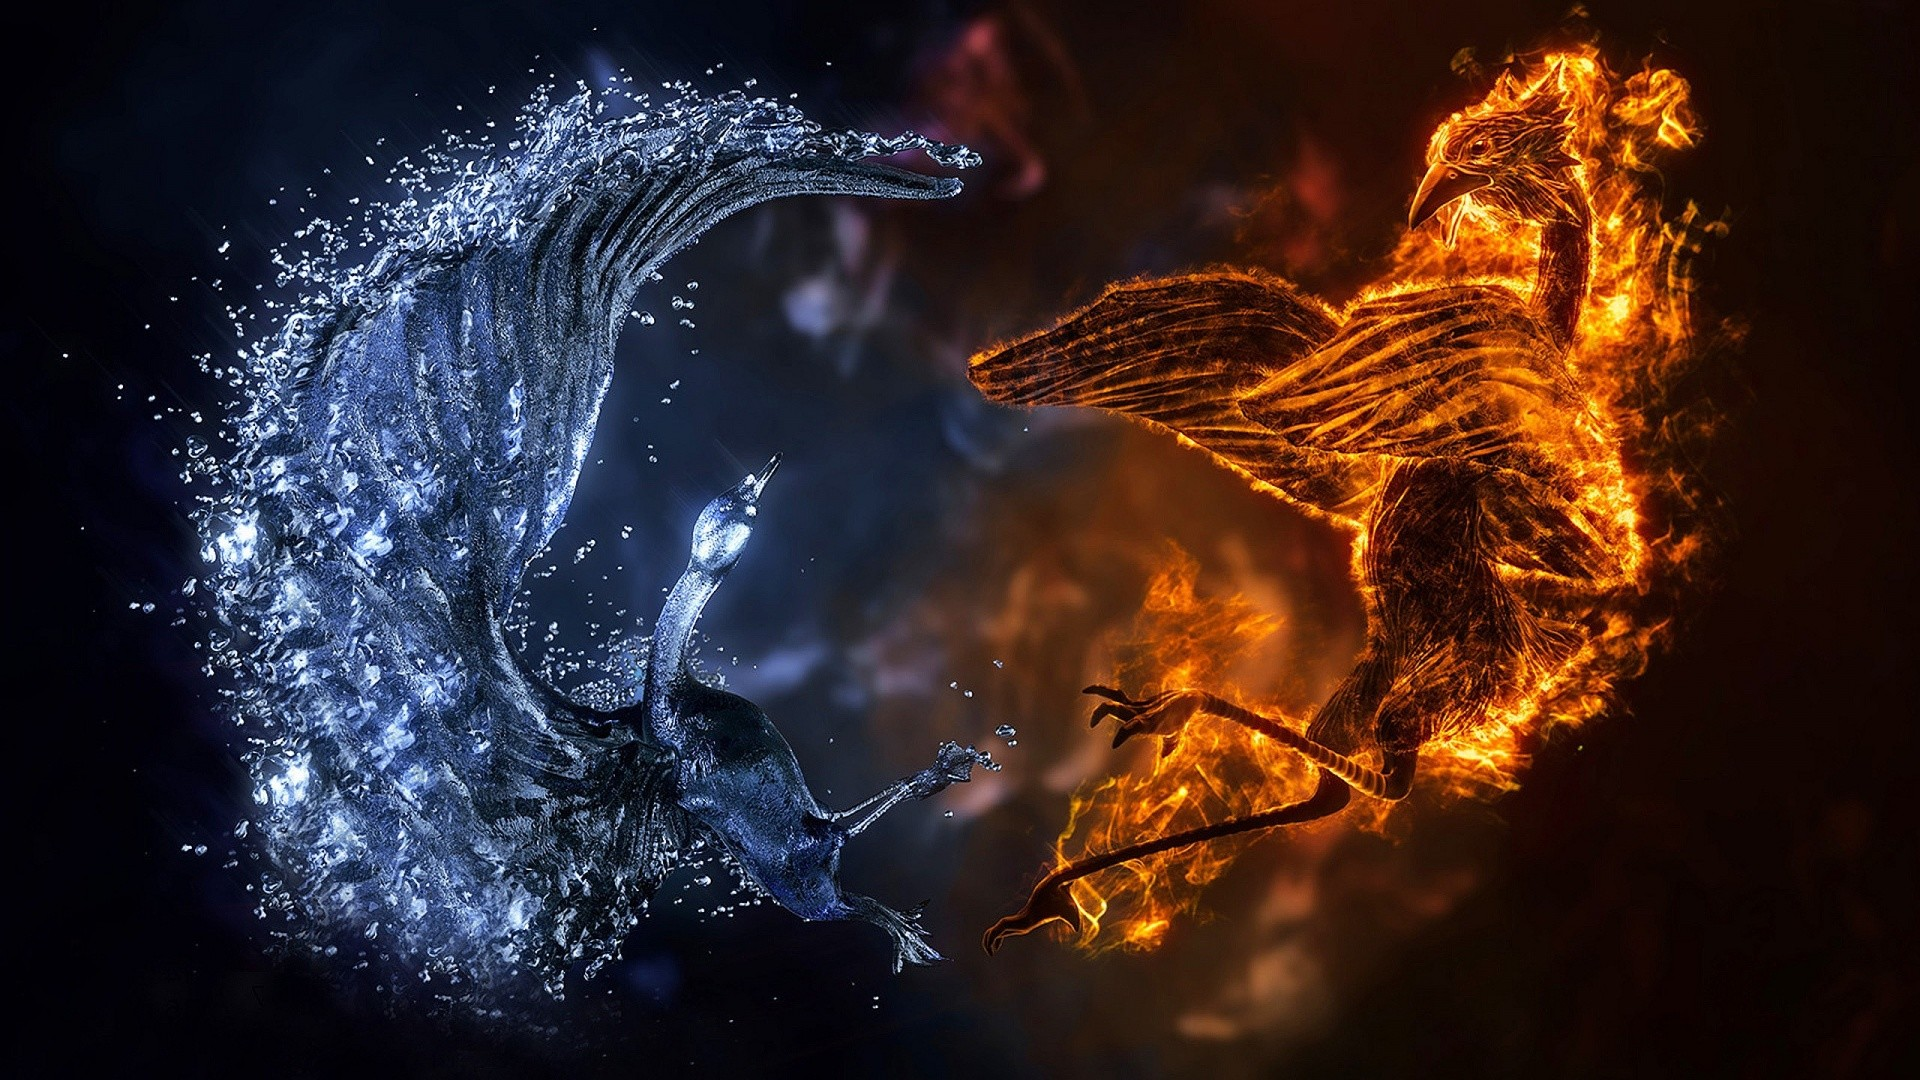 1920x1080 Description: The Wallpaper Above Is Fire Ice Birds Wallpaper In